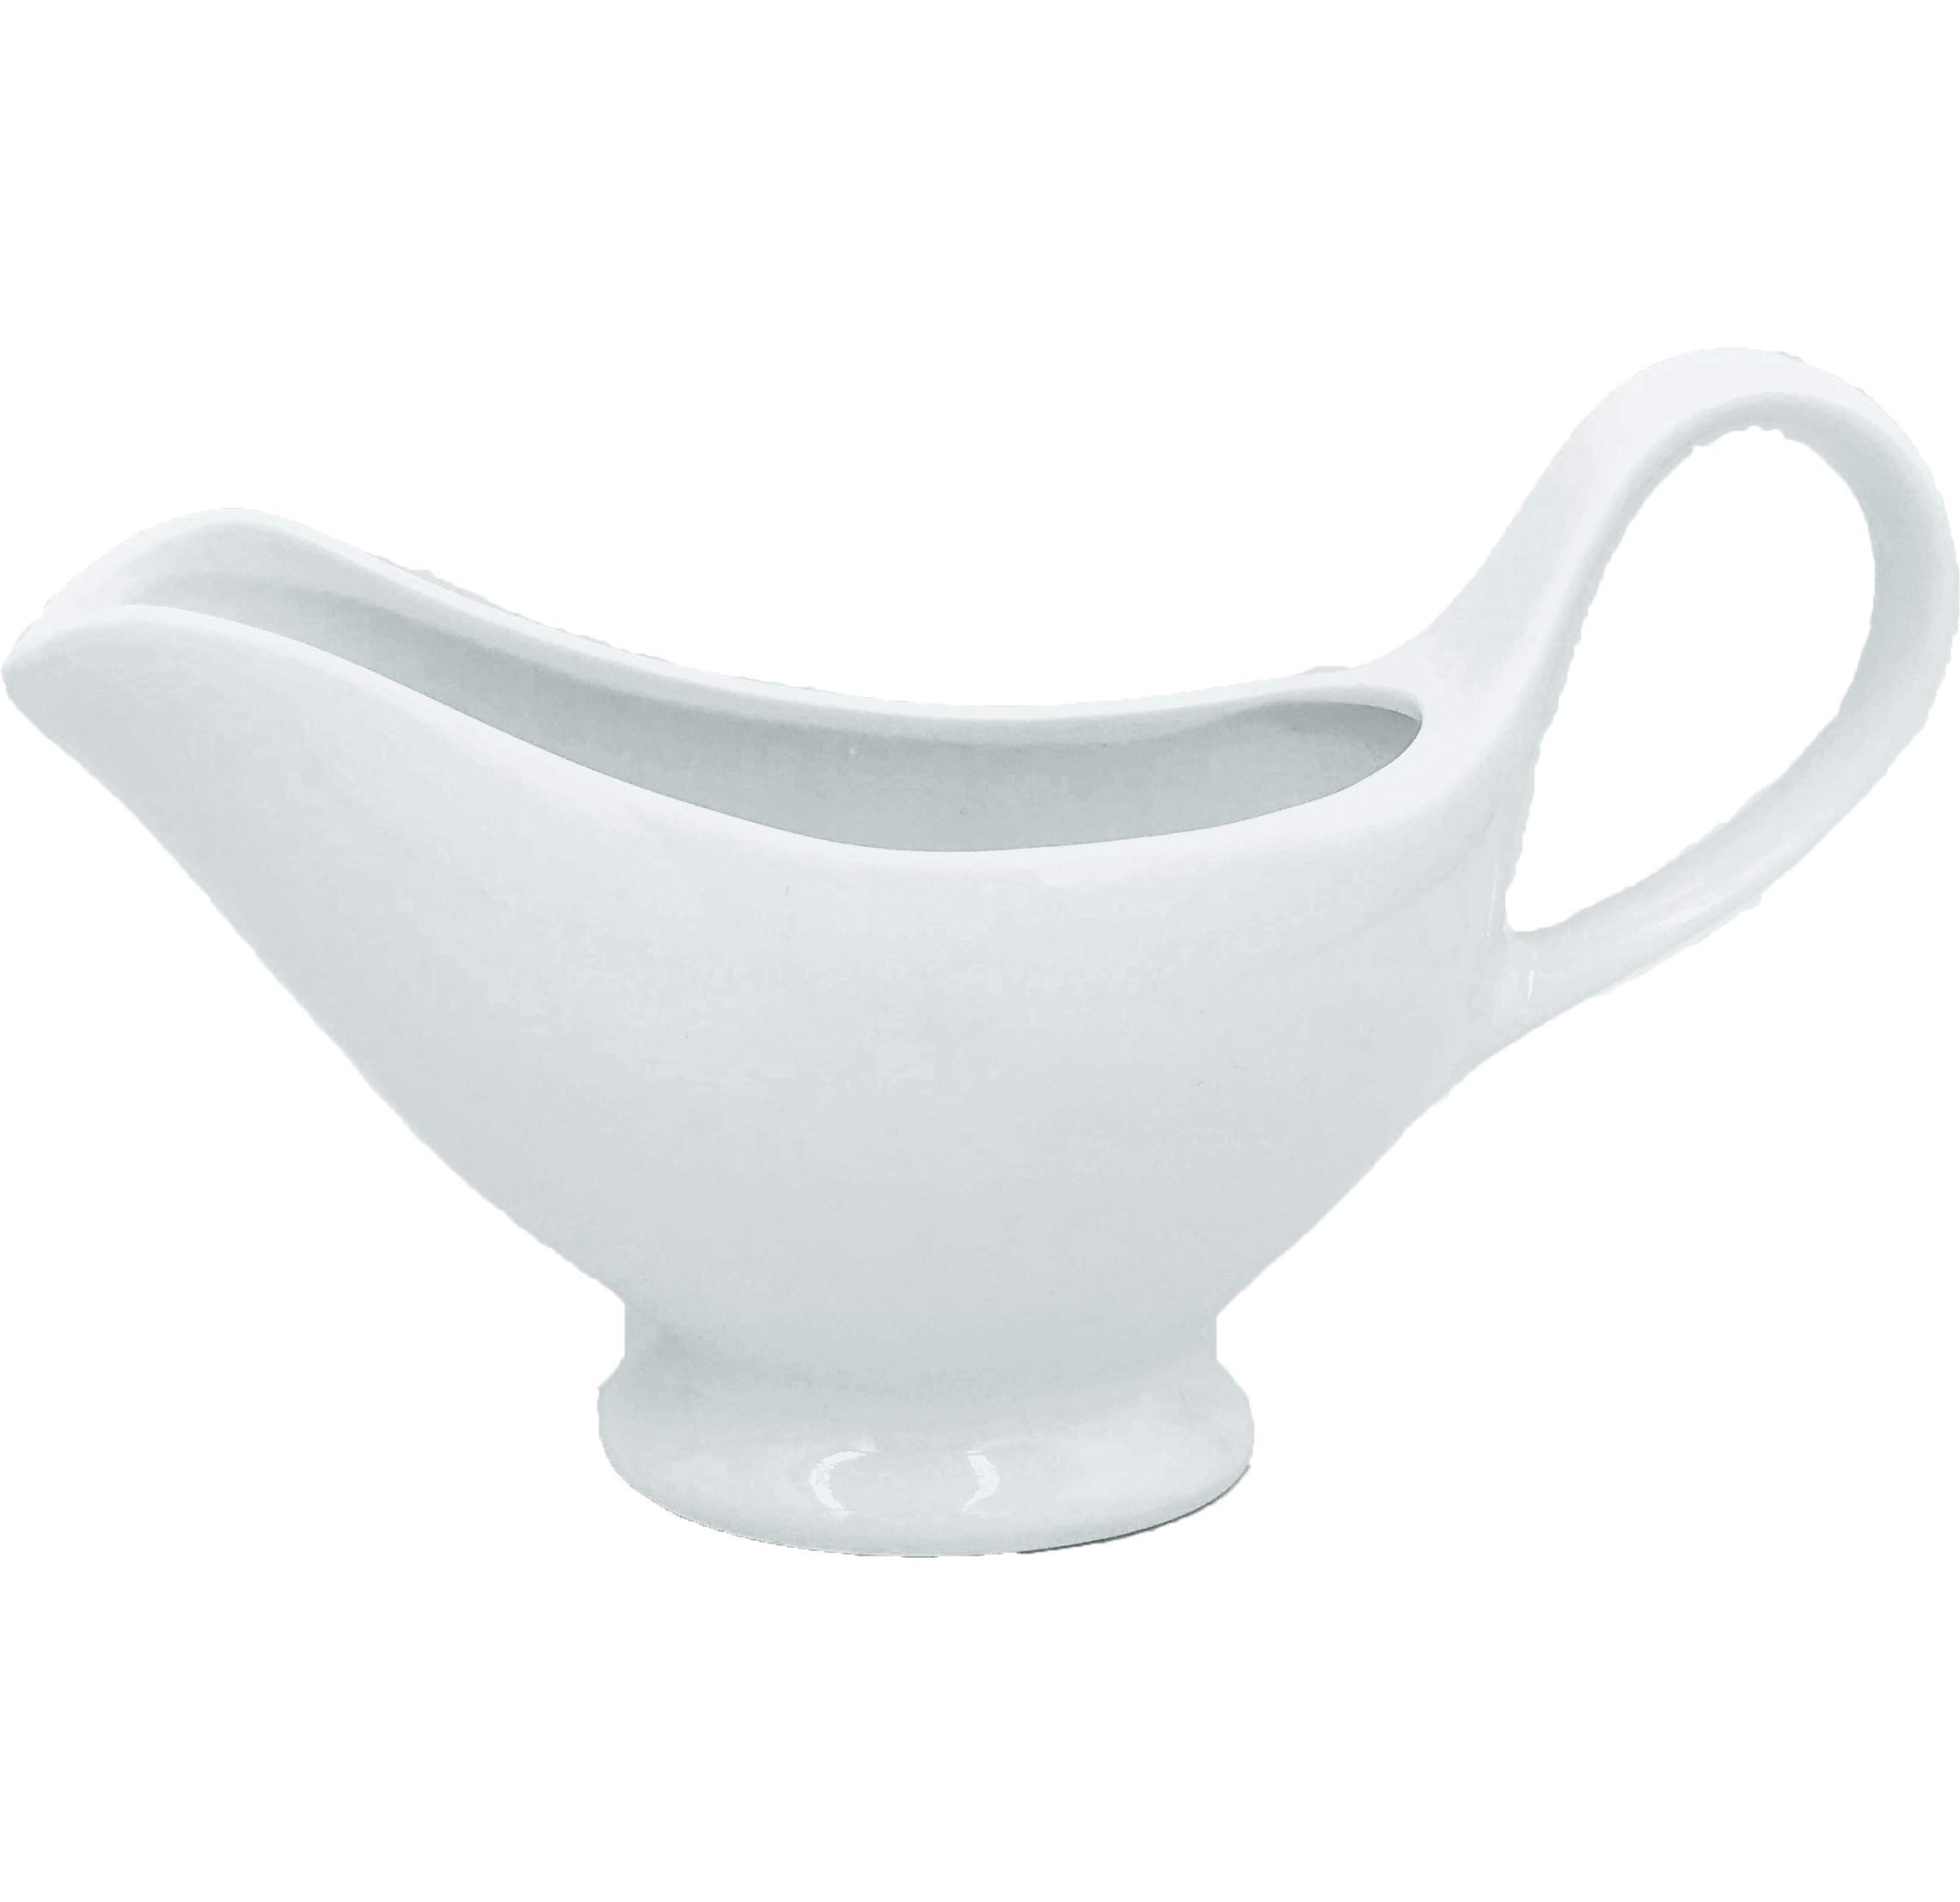 Gravy Boats White Fine Porcelain,Apply To Gravy, Salad Dressing, Sauce and Broth.(300 Milliliter-ounces)